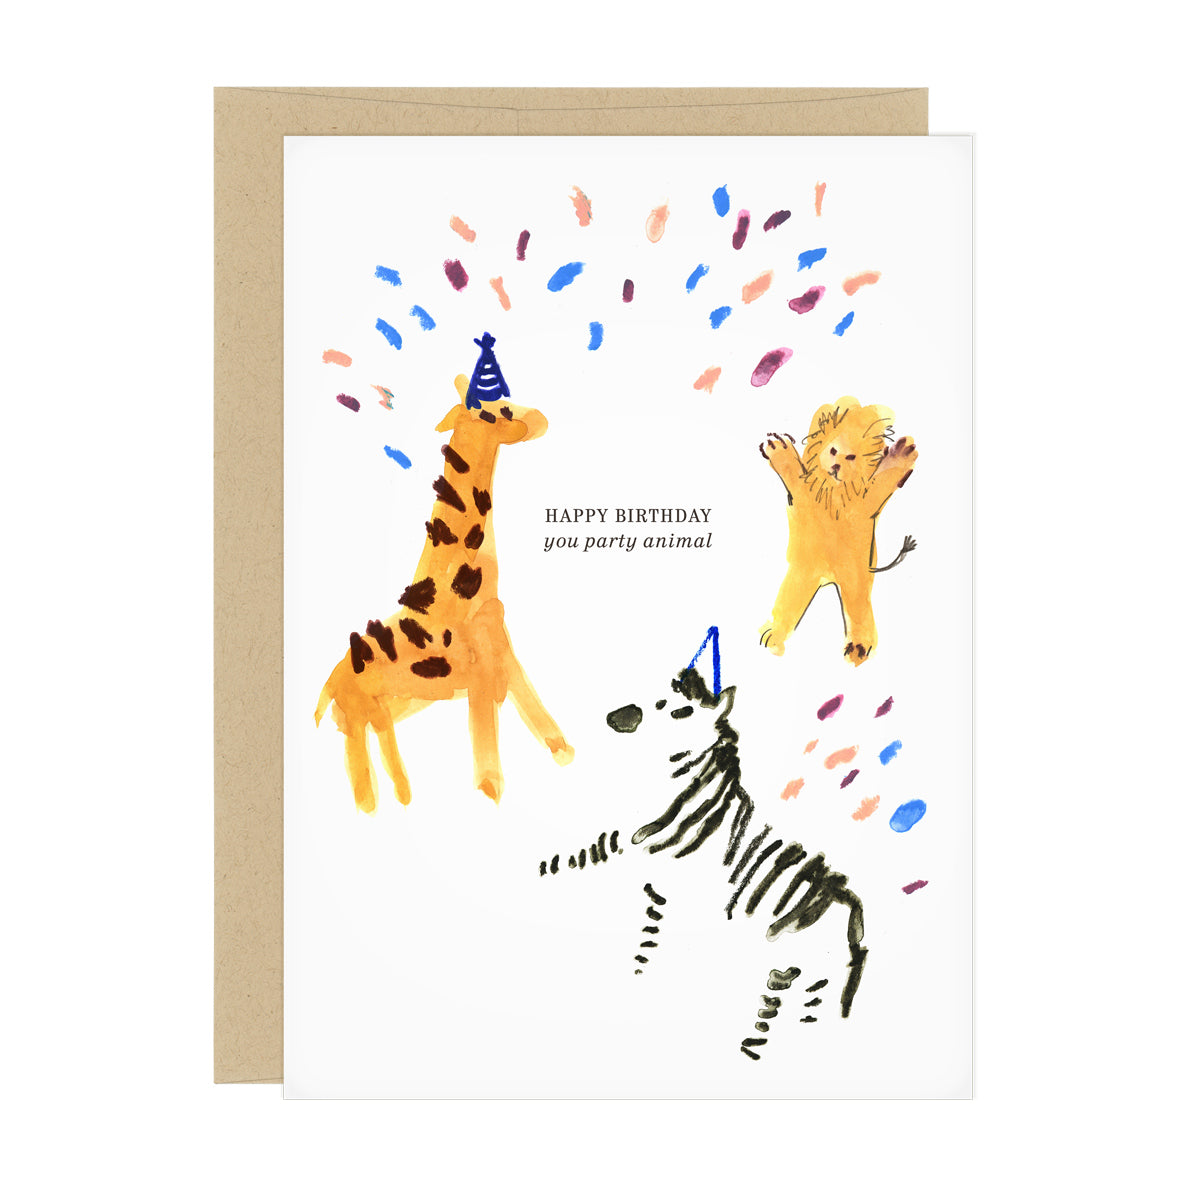 A Birthday Card Featuring Three Animals Giraffe Lion And Zebra Wearing